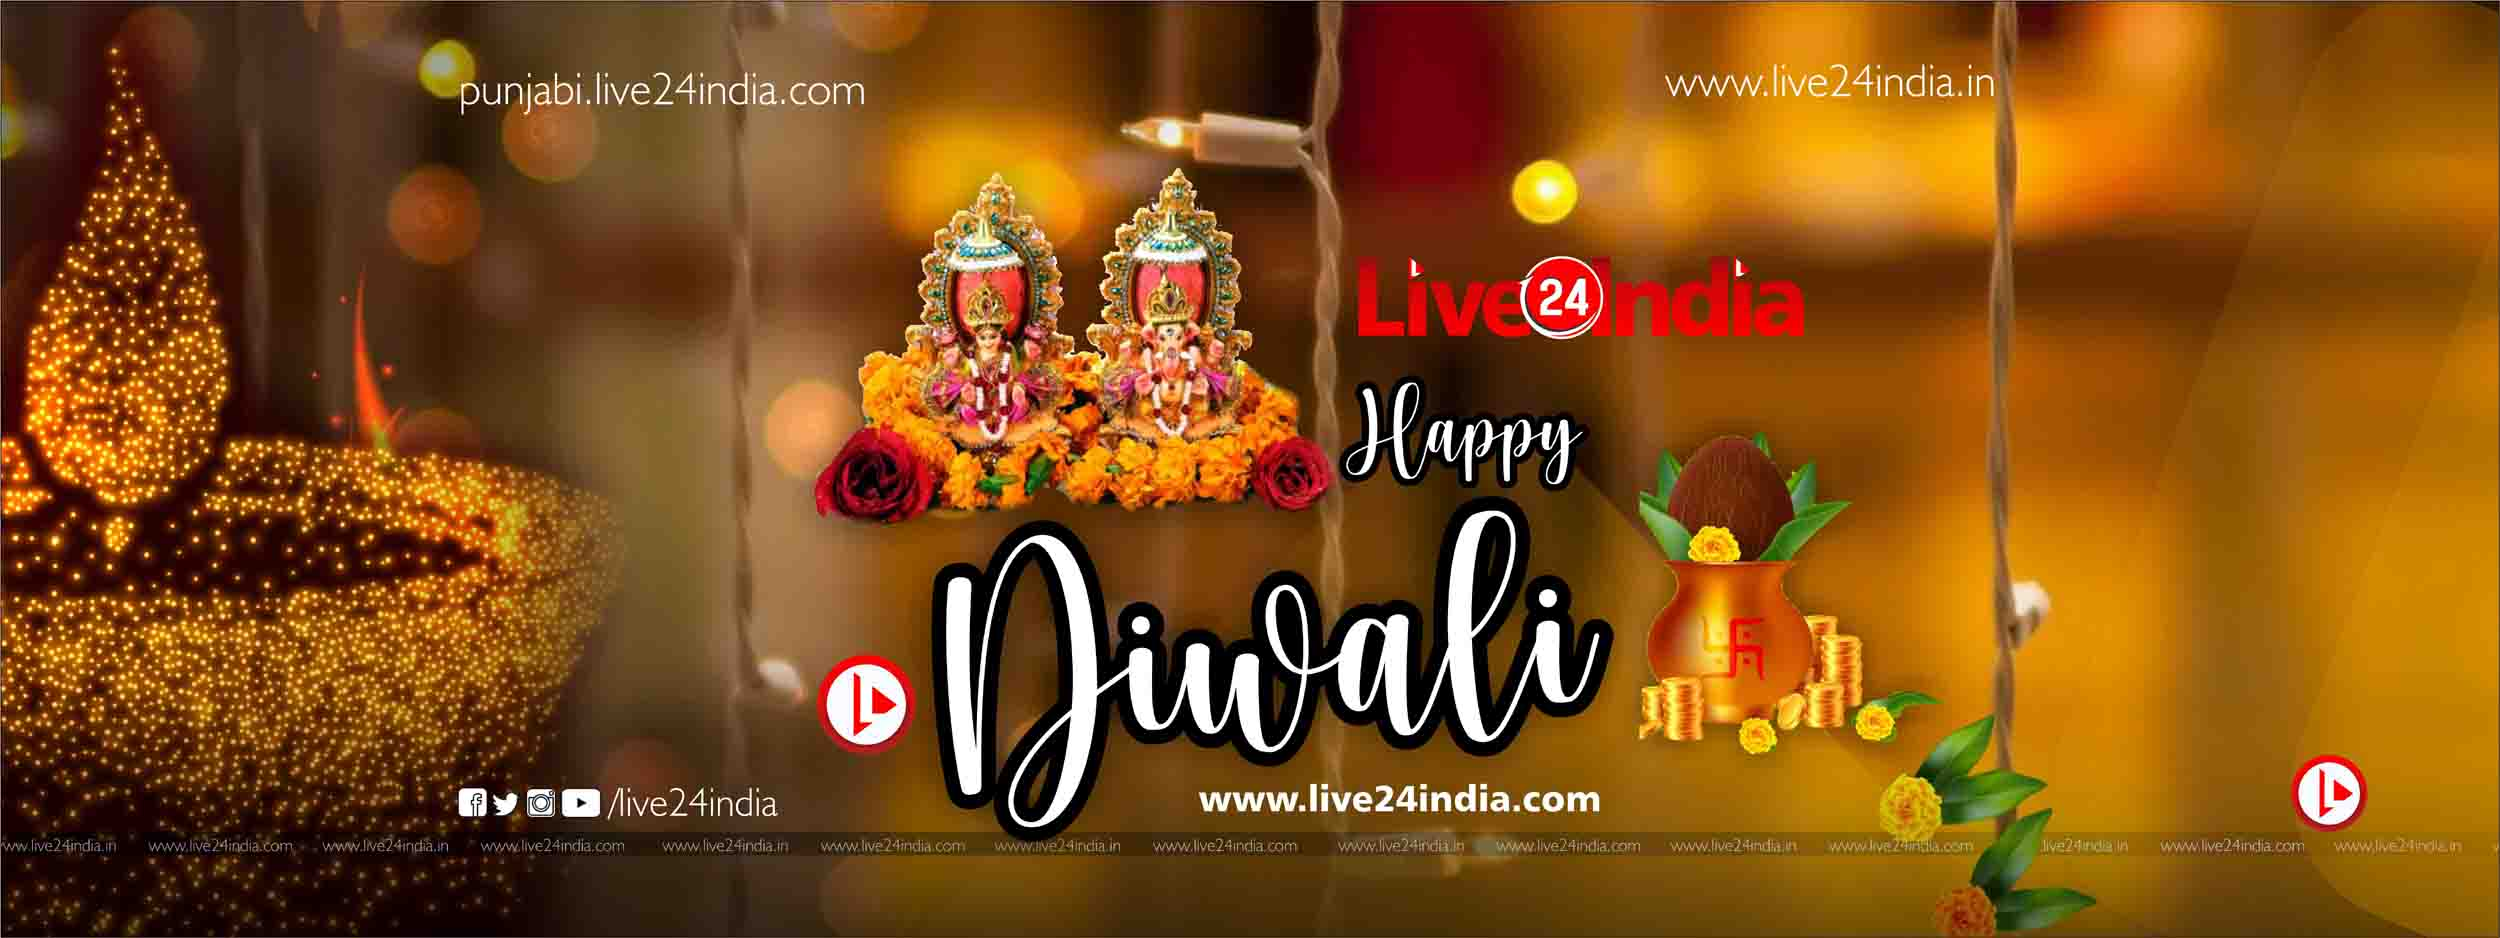 Diwali Wishes Images, Dipawali Massages WhatsAPP, SMS, Facebook Cover Diwali #Diwaliwithlive24india